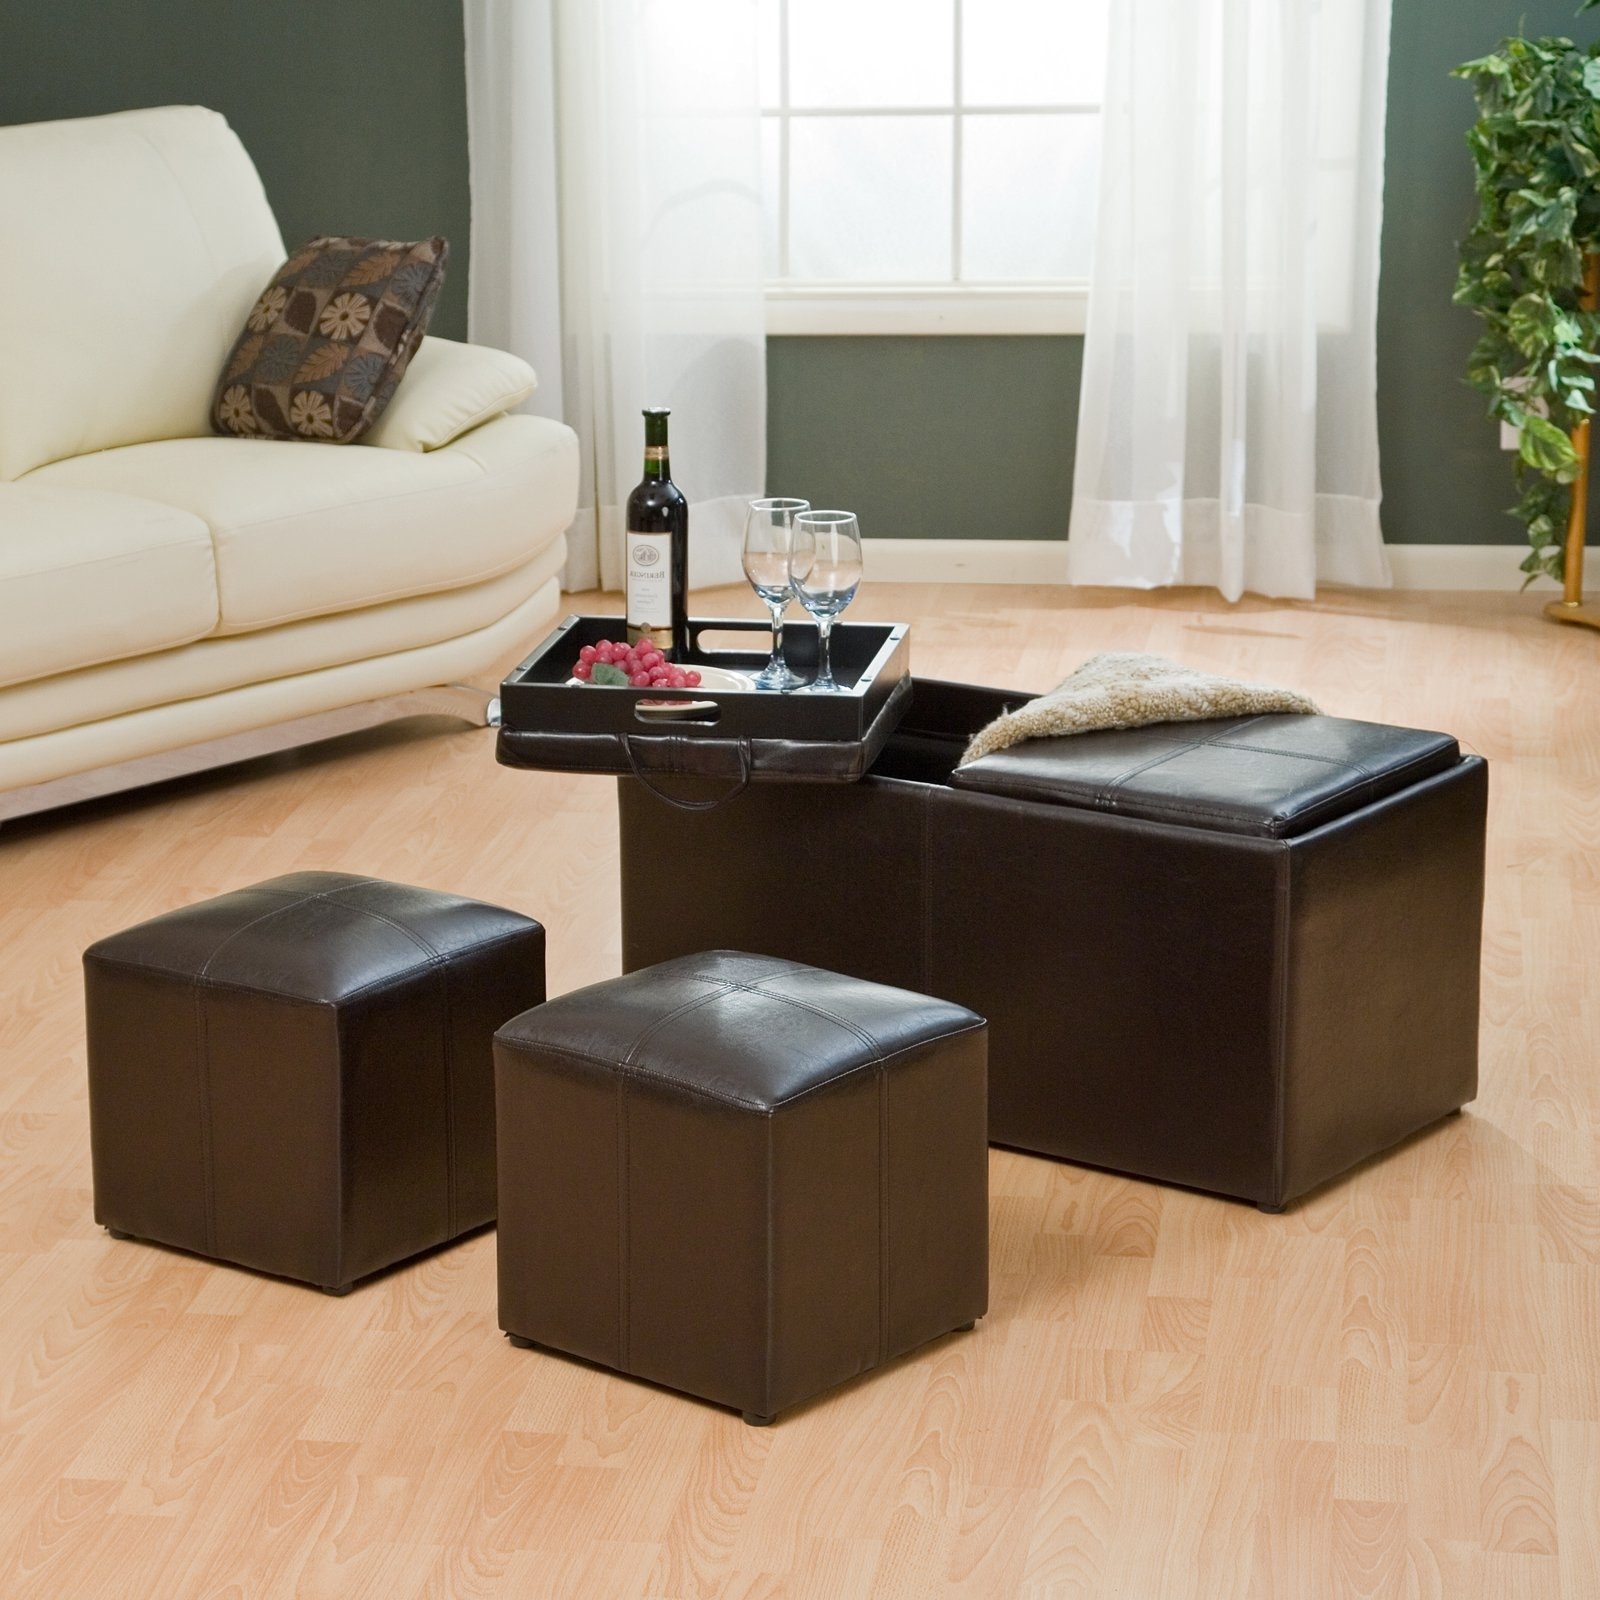 Leather Ottoman With Double Tray Table With Storage And 2 Chairs Inside Most Current Ottomans With Tray (View 17 of 20)